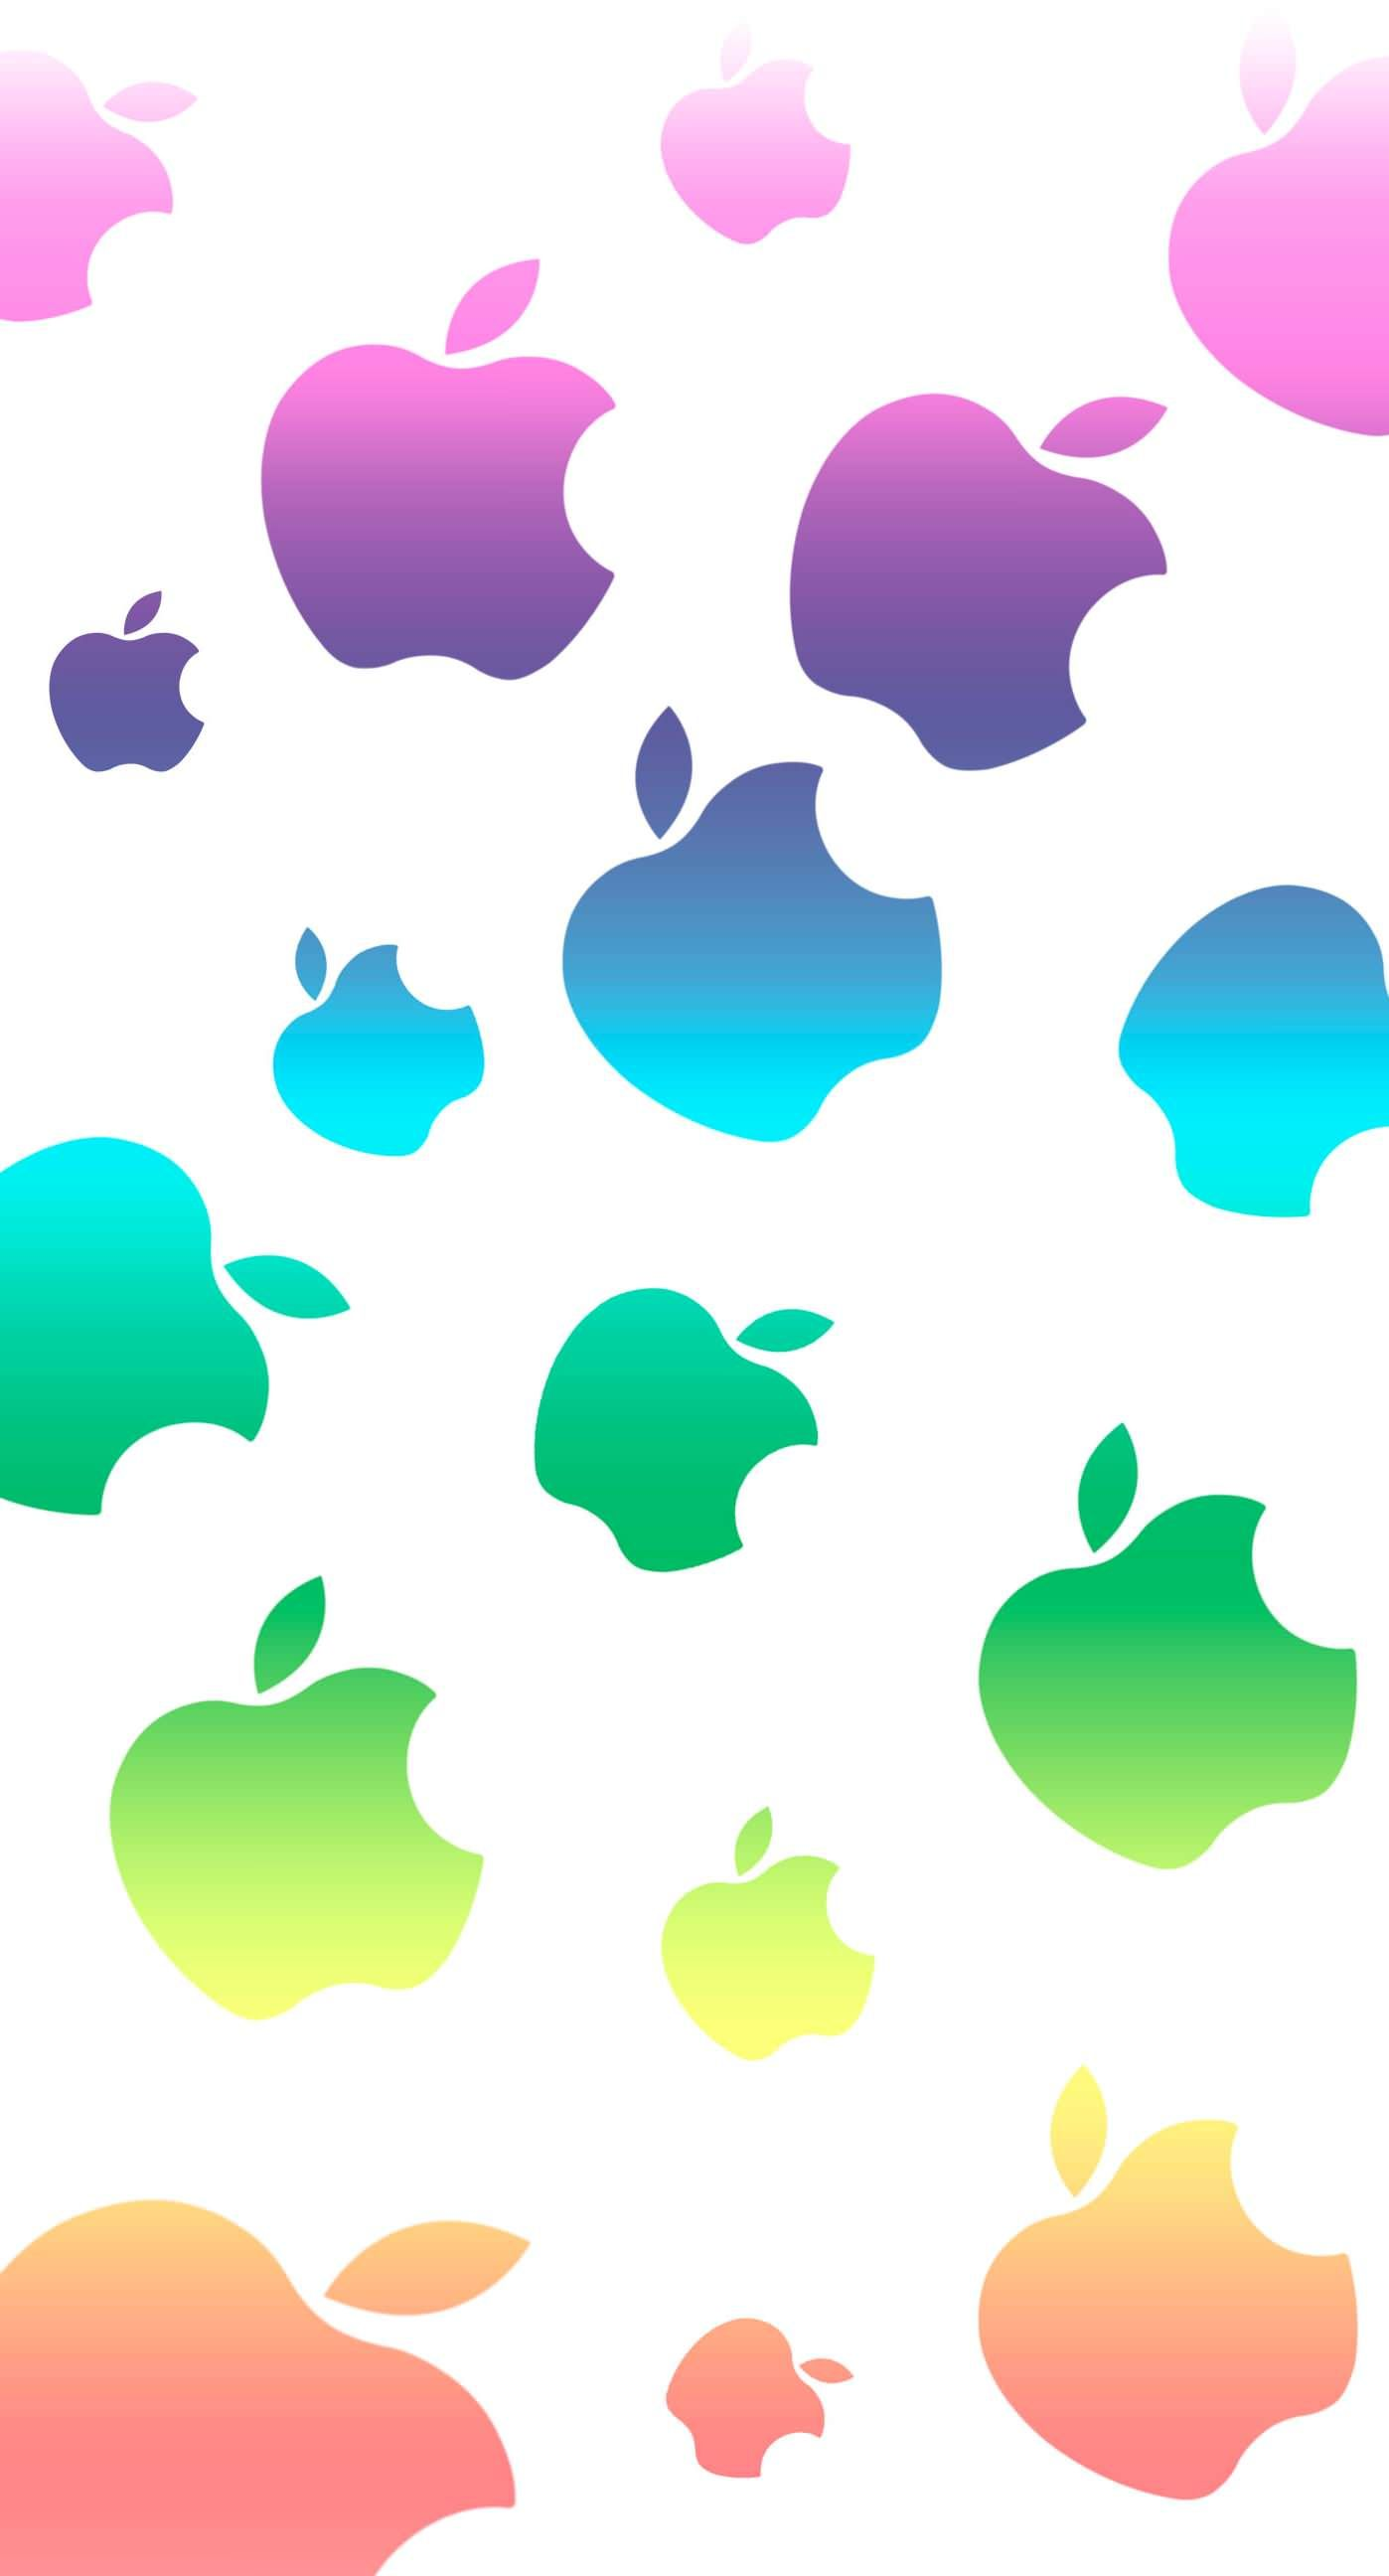 Download Cute Wallpapers For Iphone Apple Logo Wallpaper Iphone Wallpaper Iphone Cute Apple Wallpaper Iphone